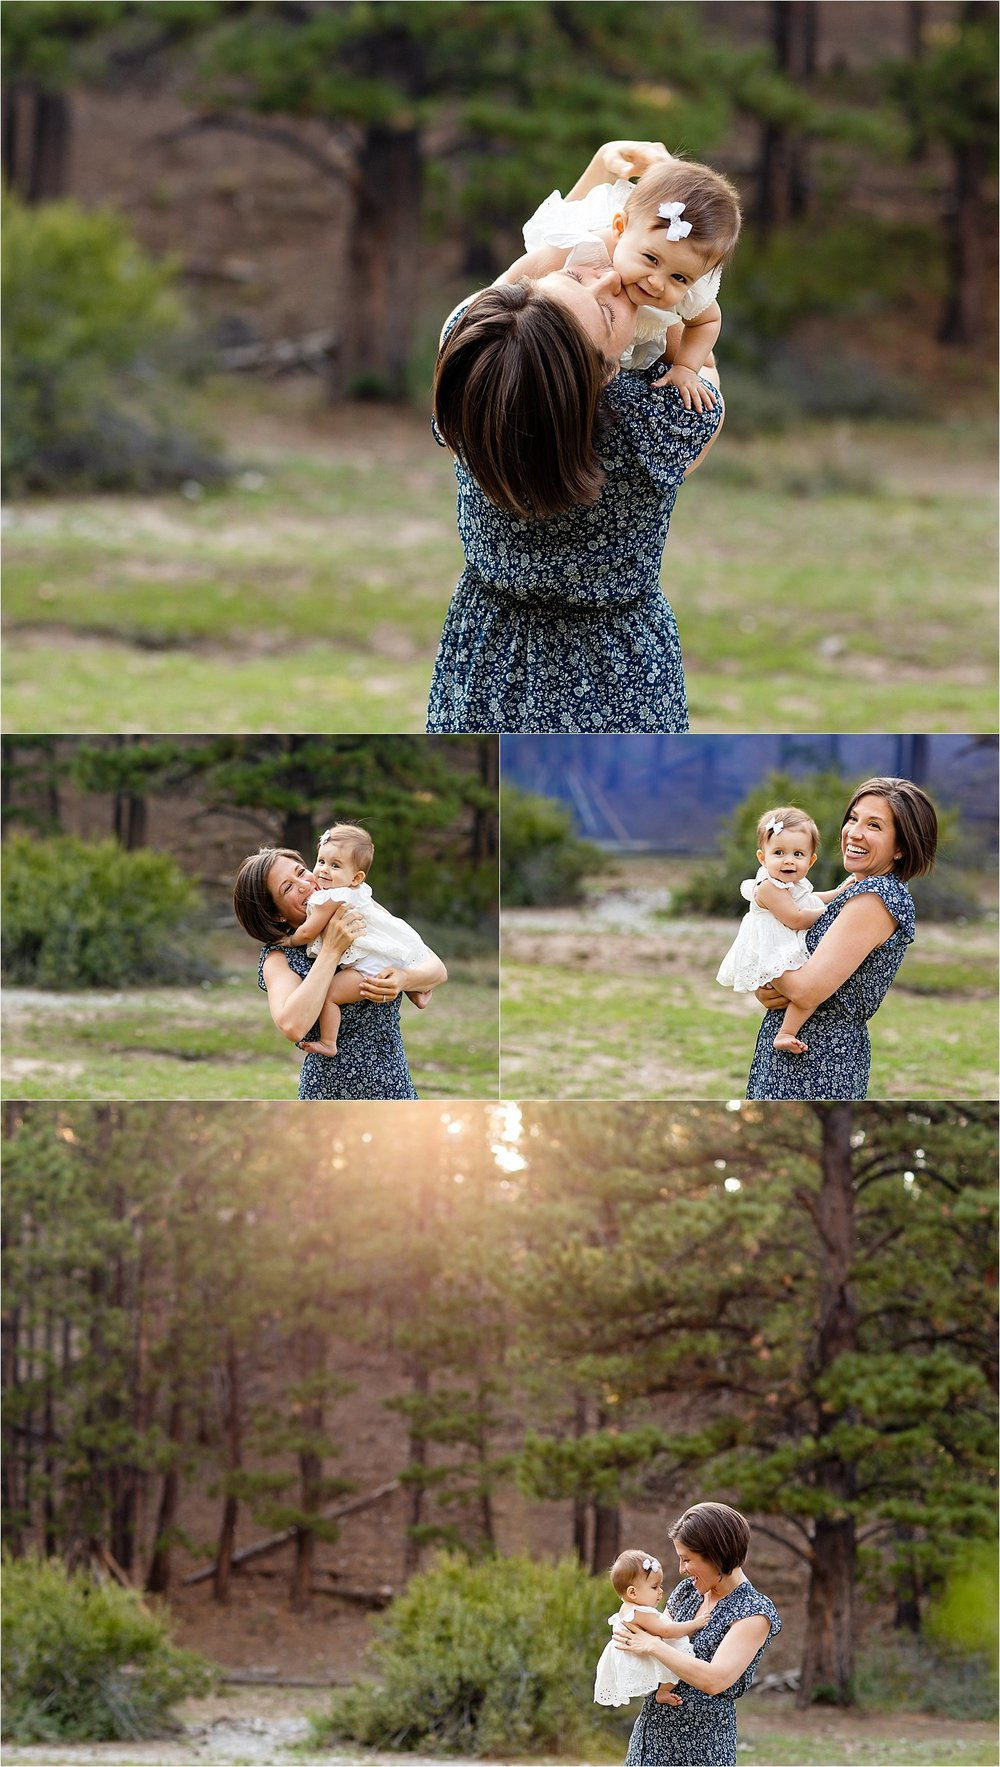 mom-with-baby-photography.jpg